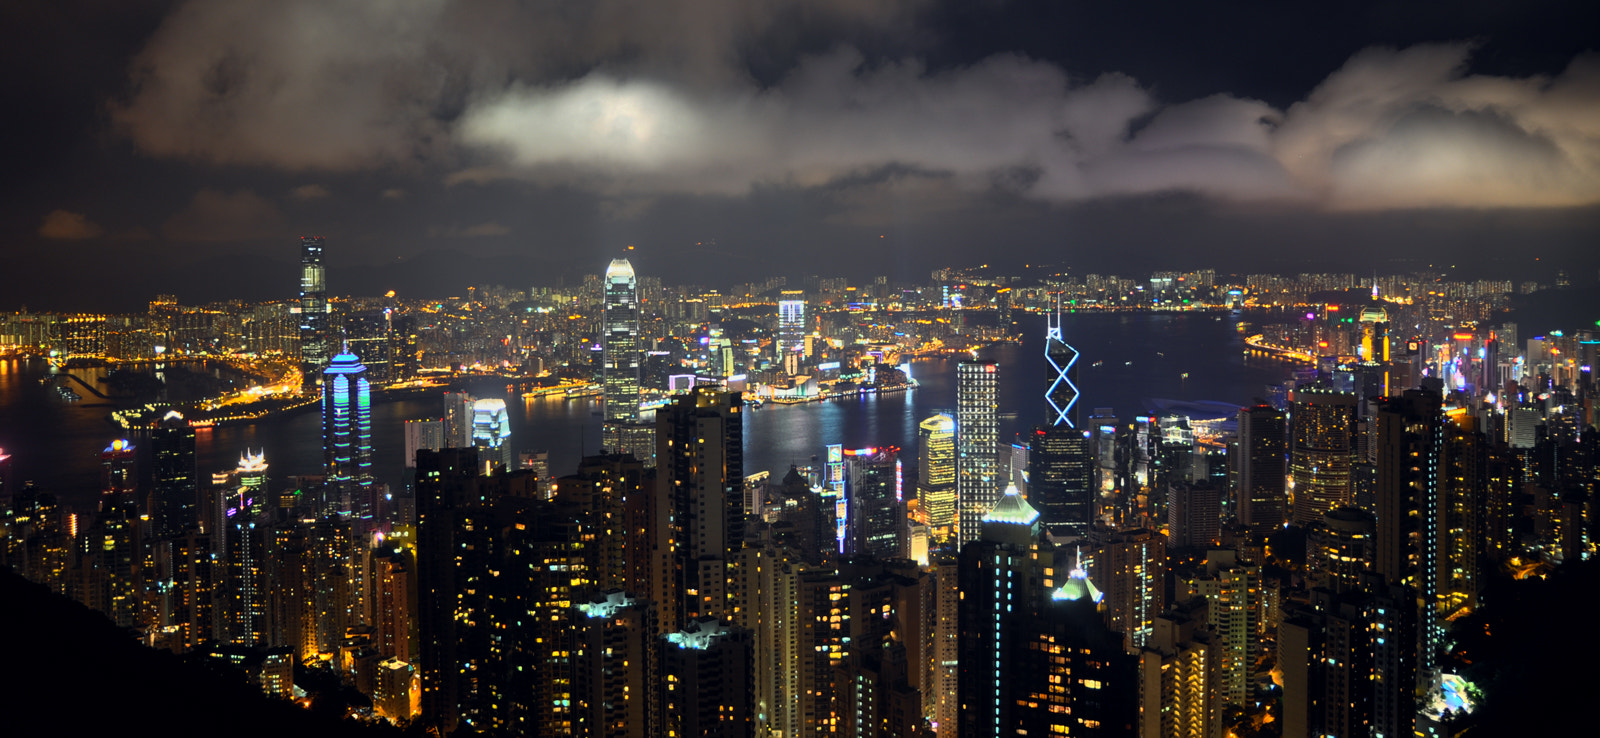 Photograph Victoria Harbour Pano, Hong Kong by Al  on 500px